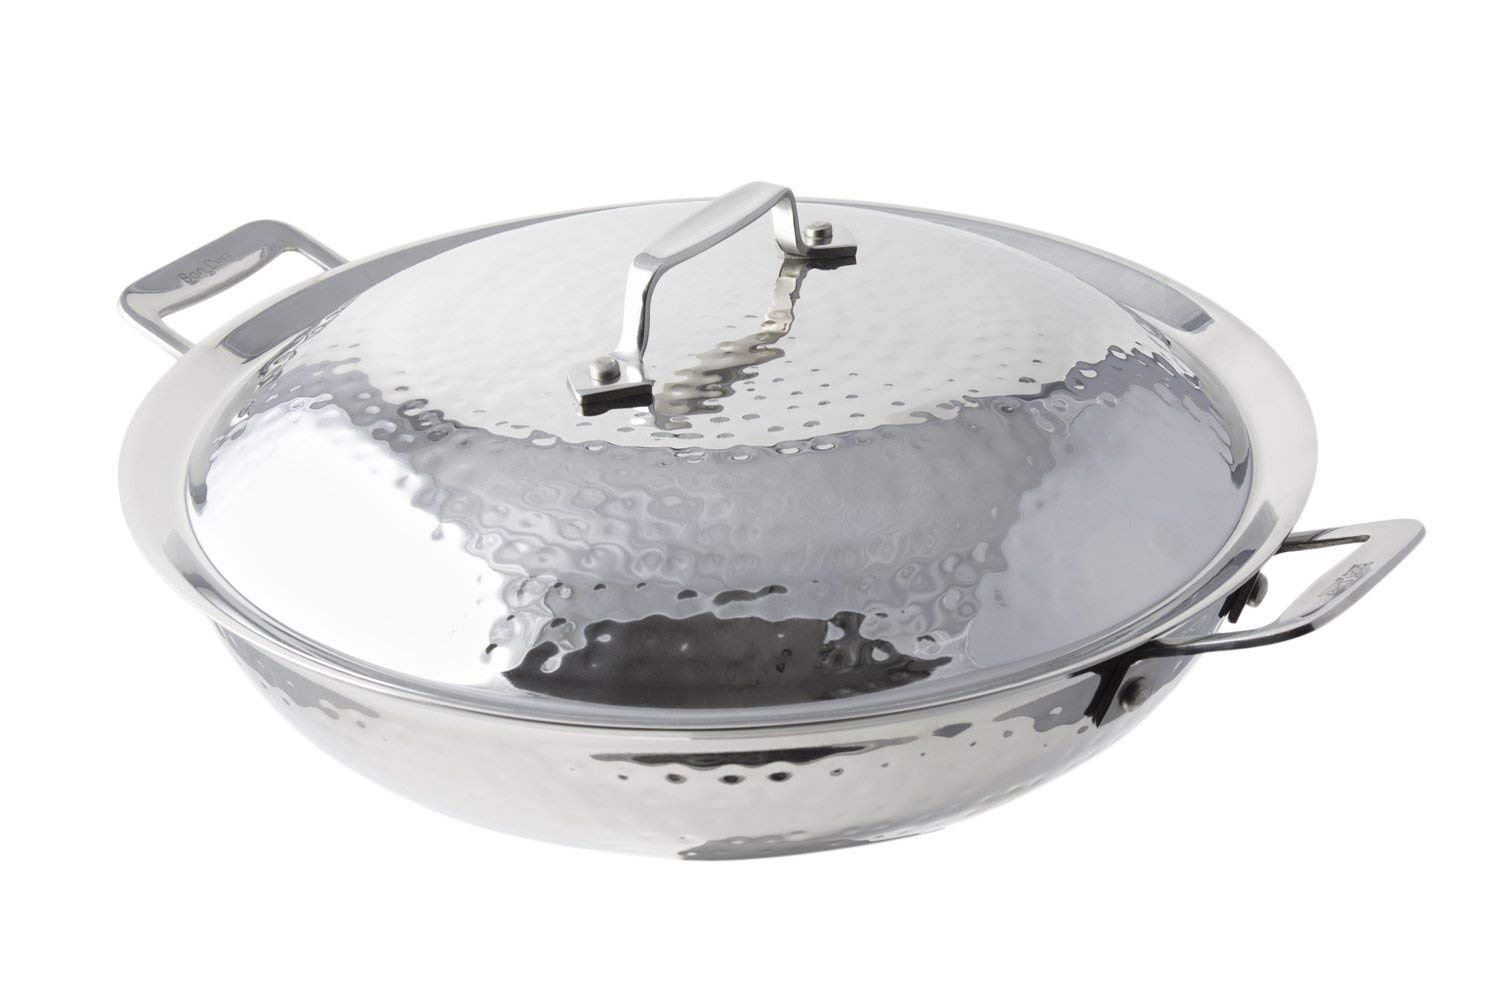 """Bon Chef 60015HF Stainless Steel Induction Bottom Cucina 12"""" Chef's Pan with Lid and 2 Side Handles, Hammered Finish, 3-1/2 quart Capacity, 14-29/32"""" Length x 12"""" Width x 6-13/64"""" Height"""